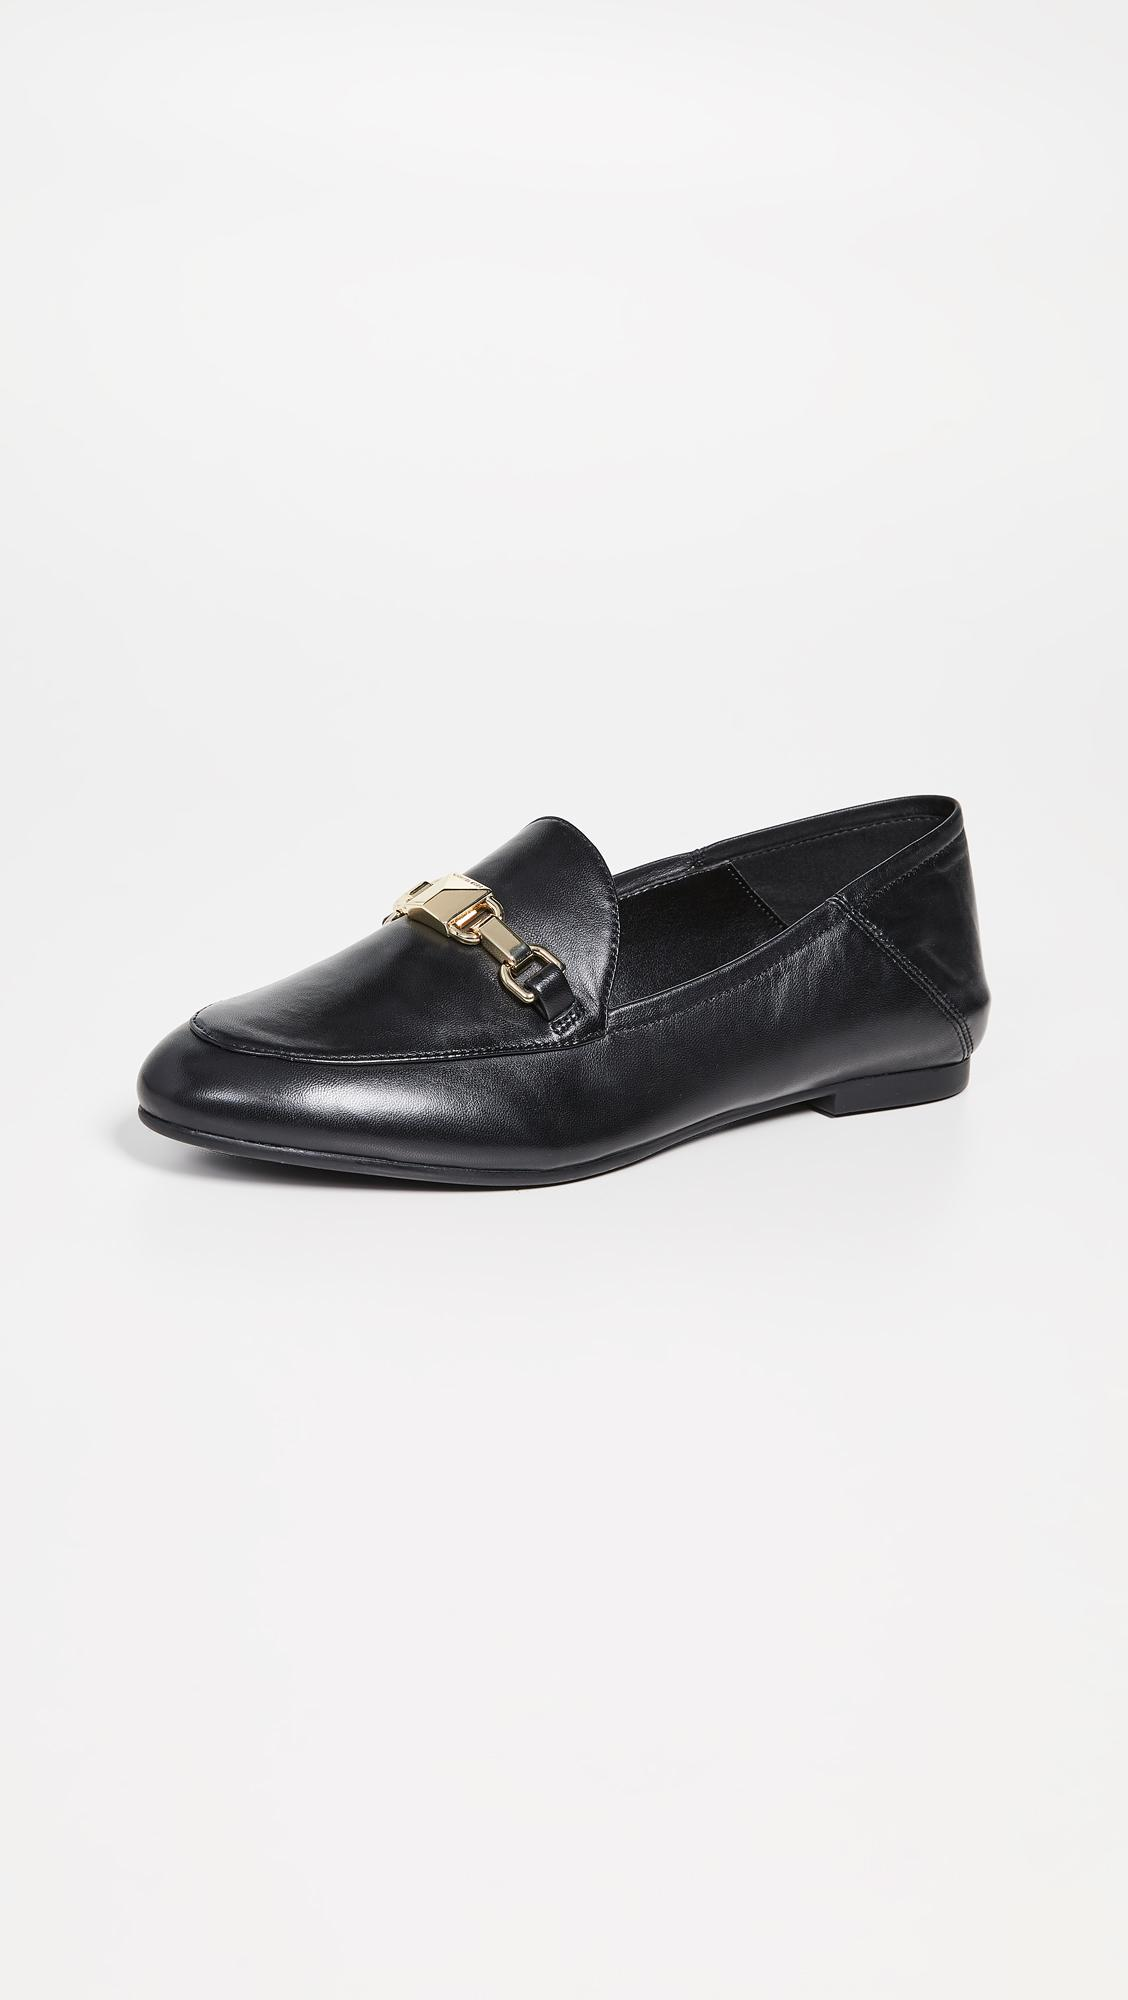 48a720fe20b Lyst - MICHAEL Michael Kors Charlton Loafers in Black